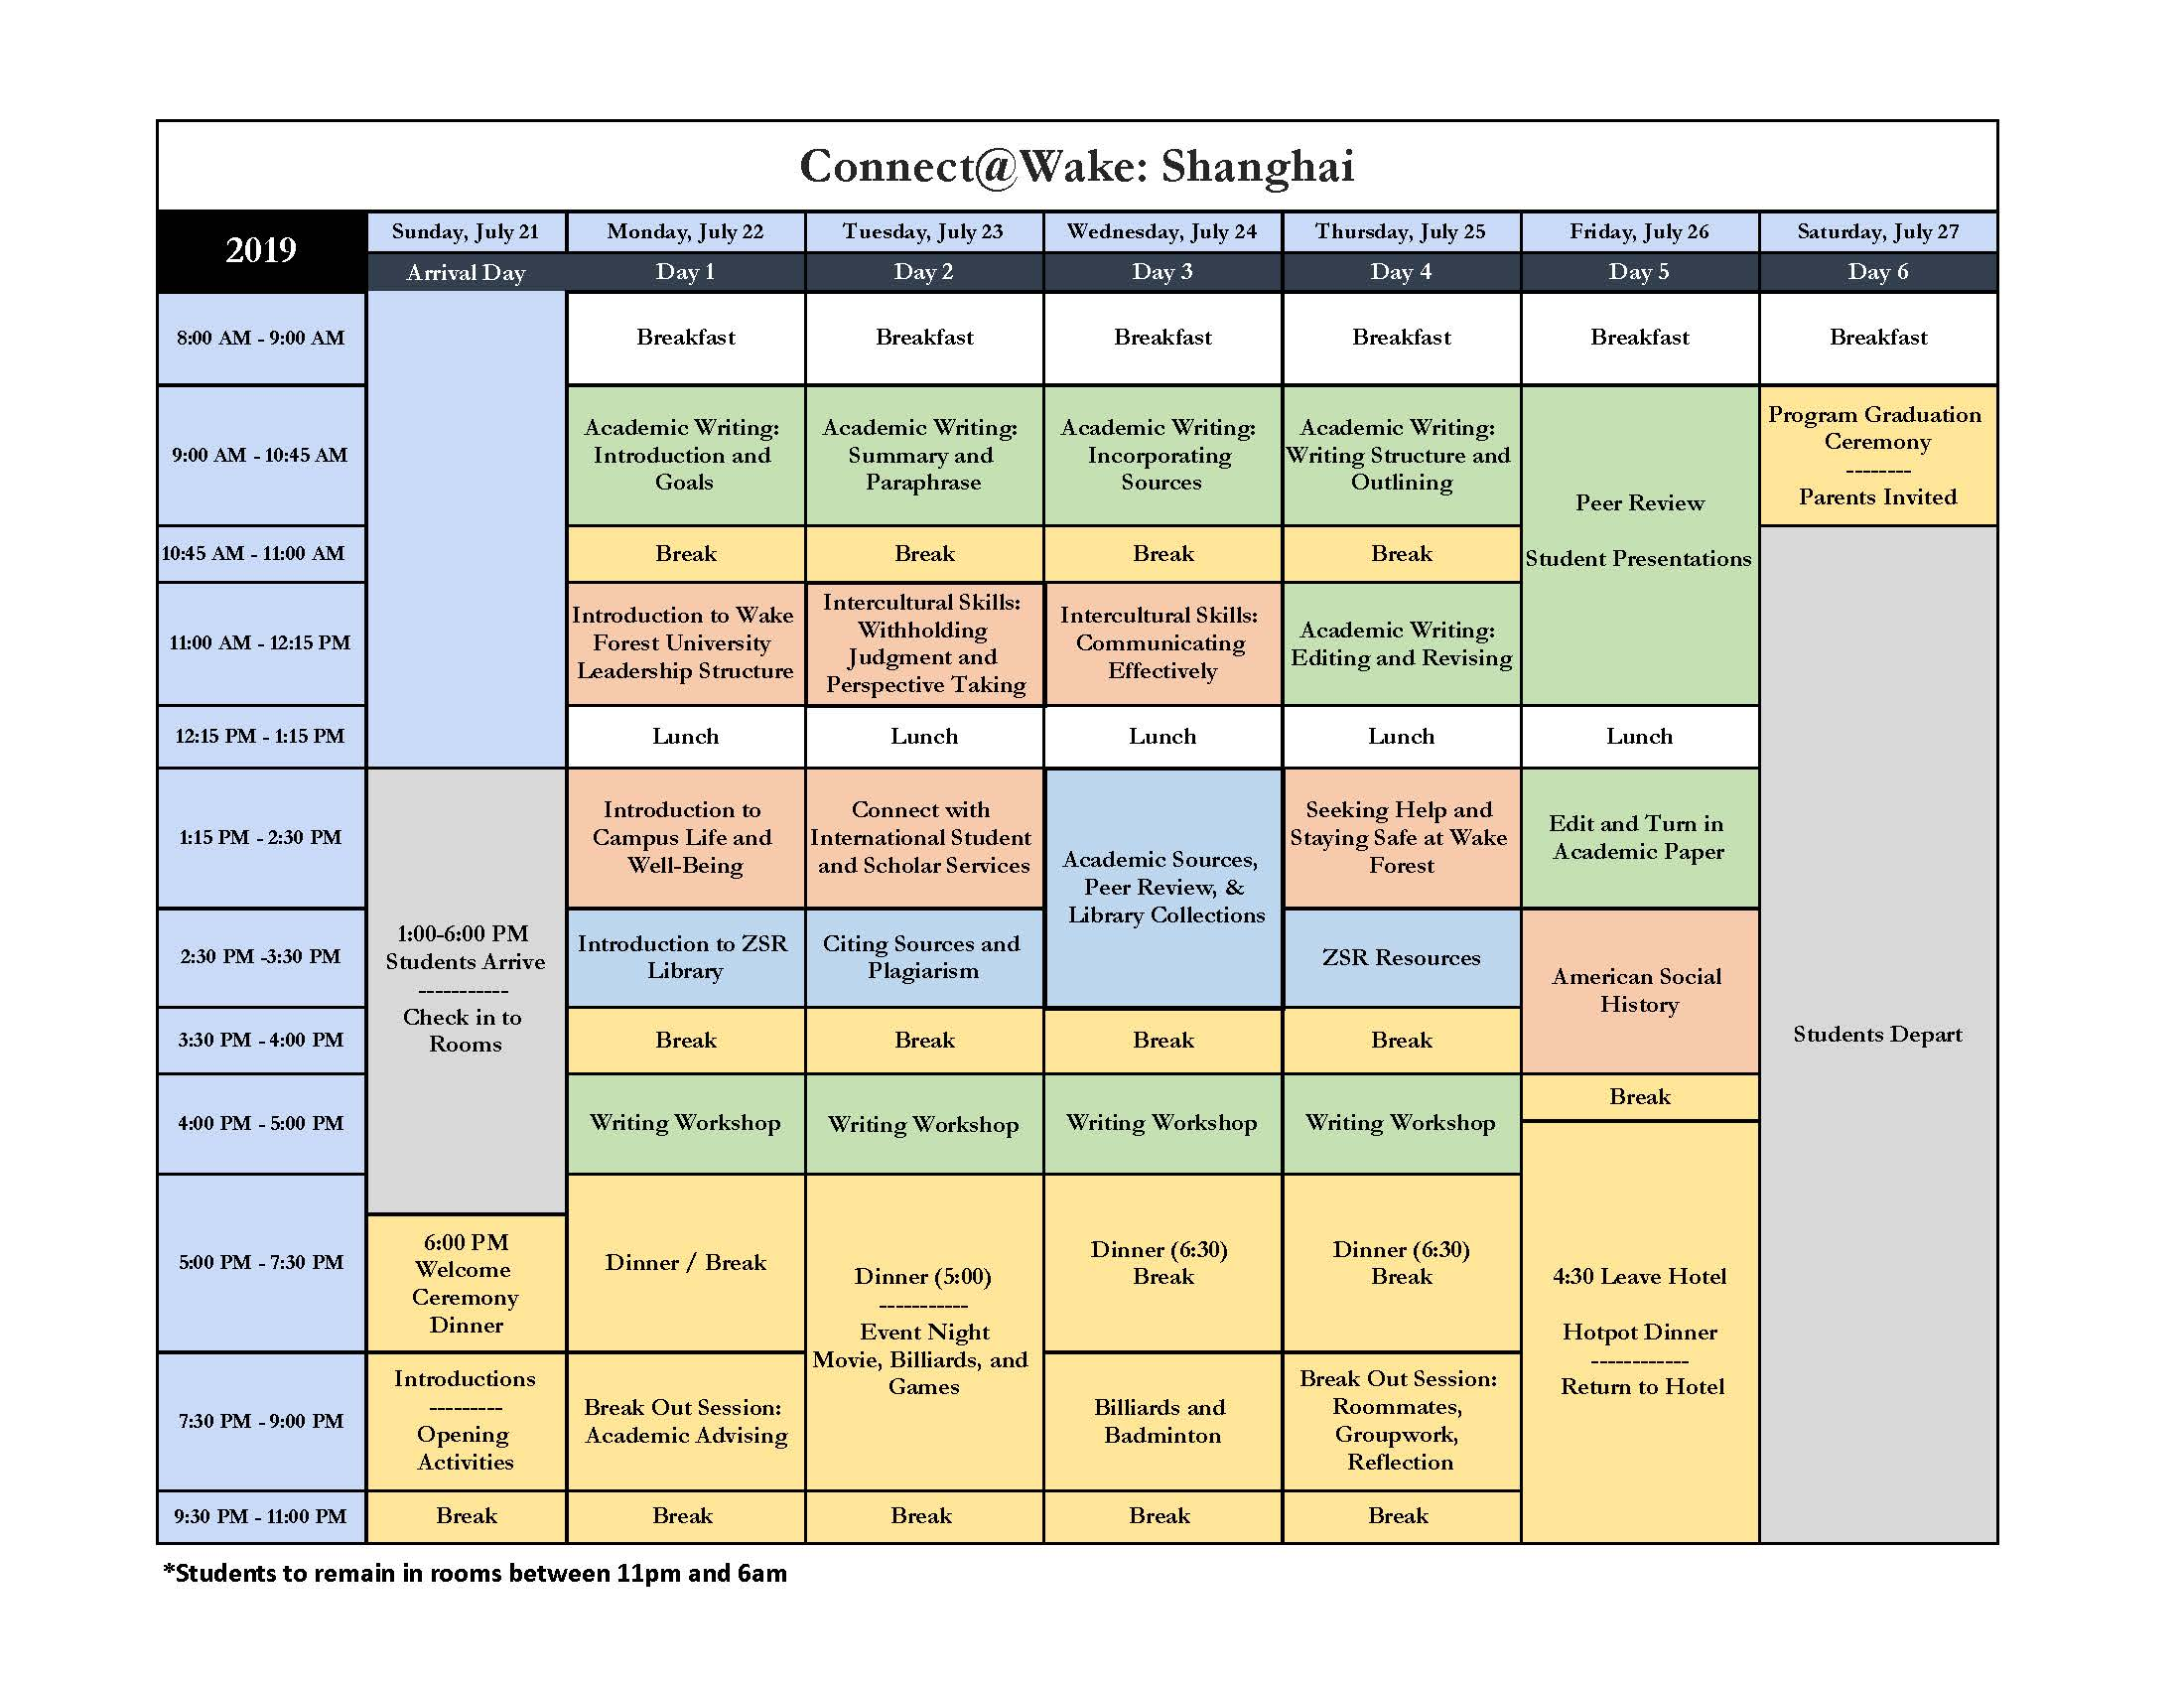 CWS Course Schedule 7 11 19 FINAL